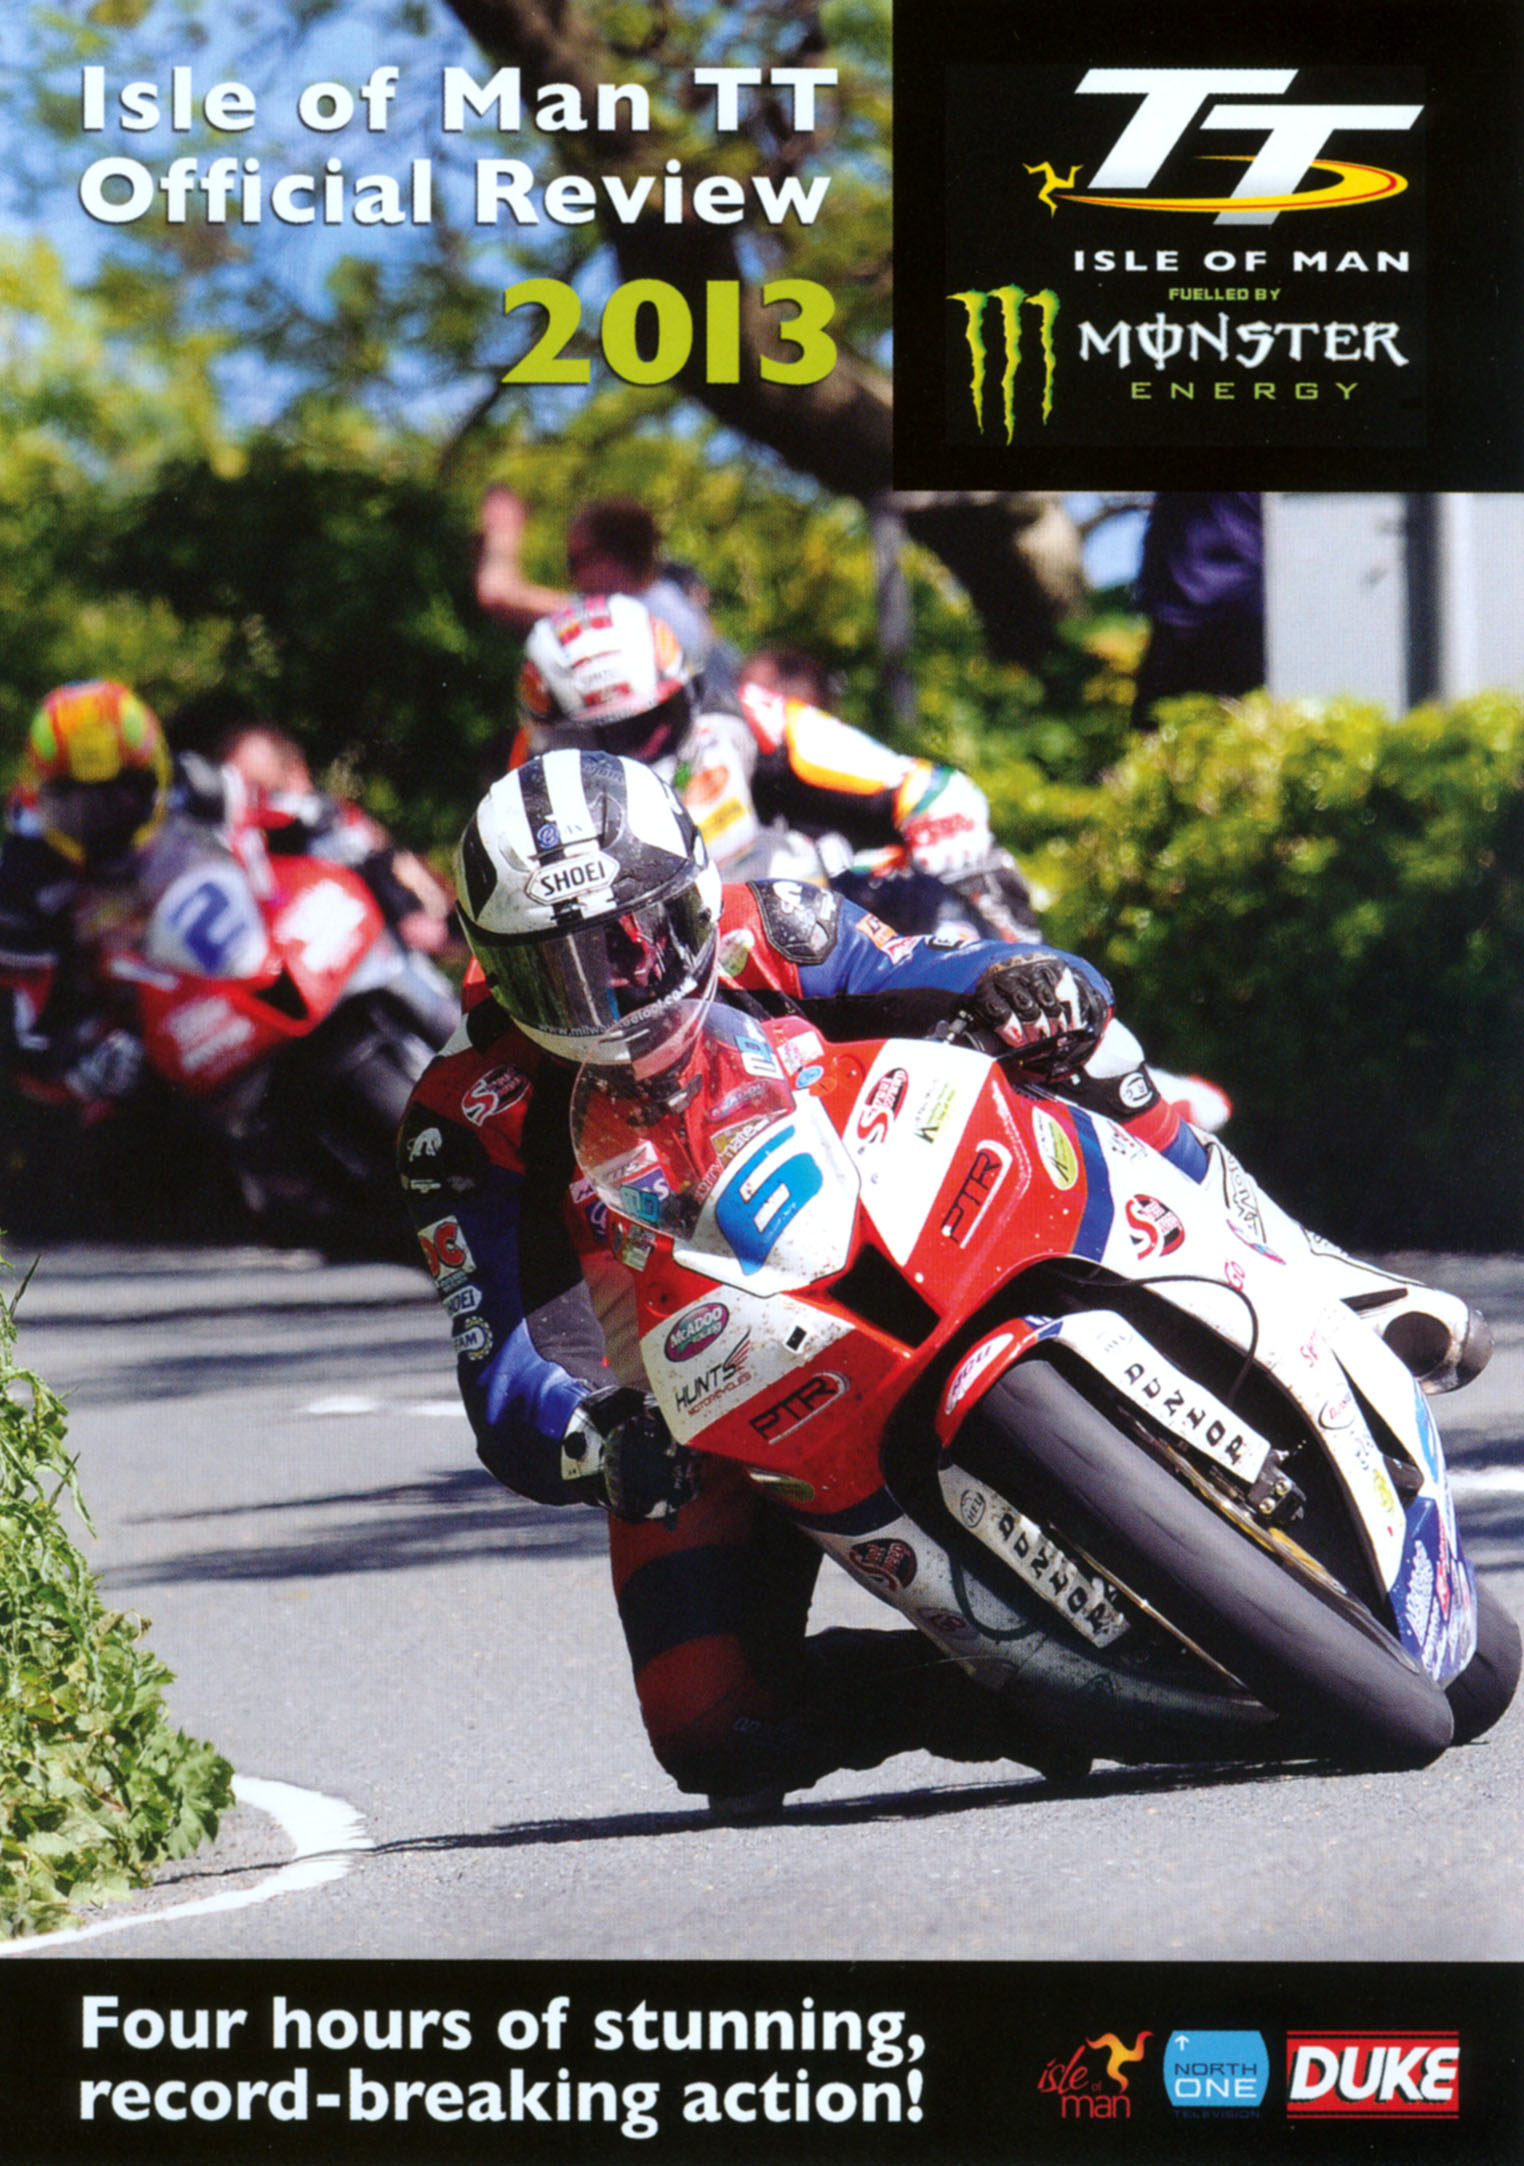 Isle of Man TT 2013 Official Review